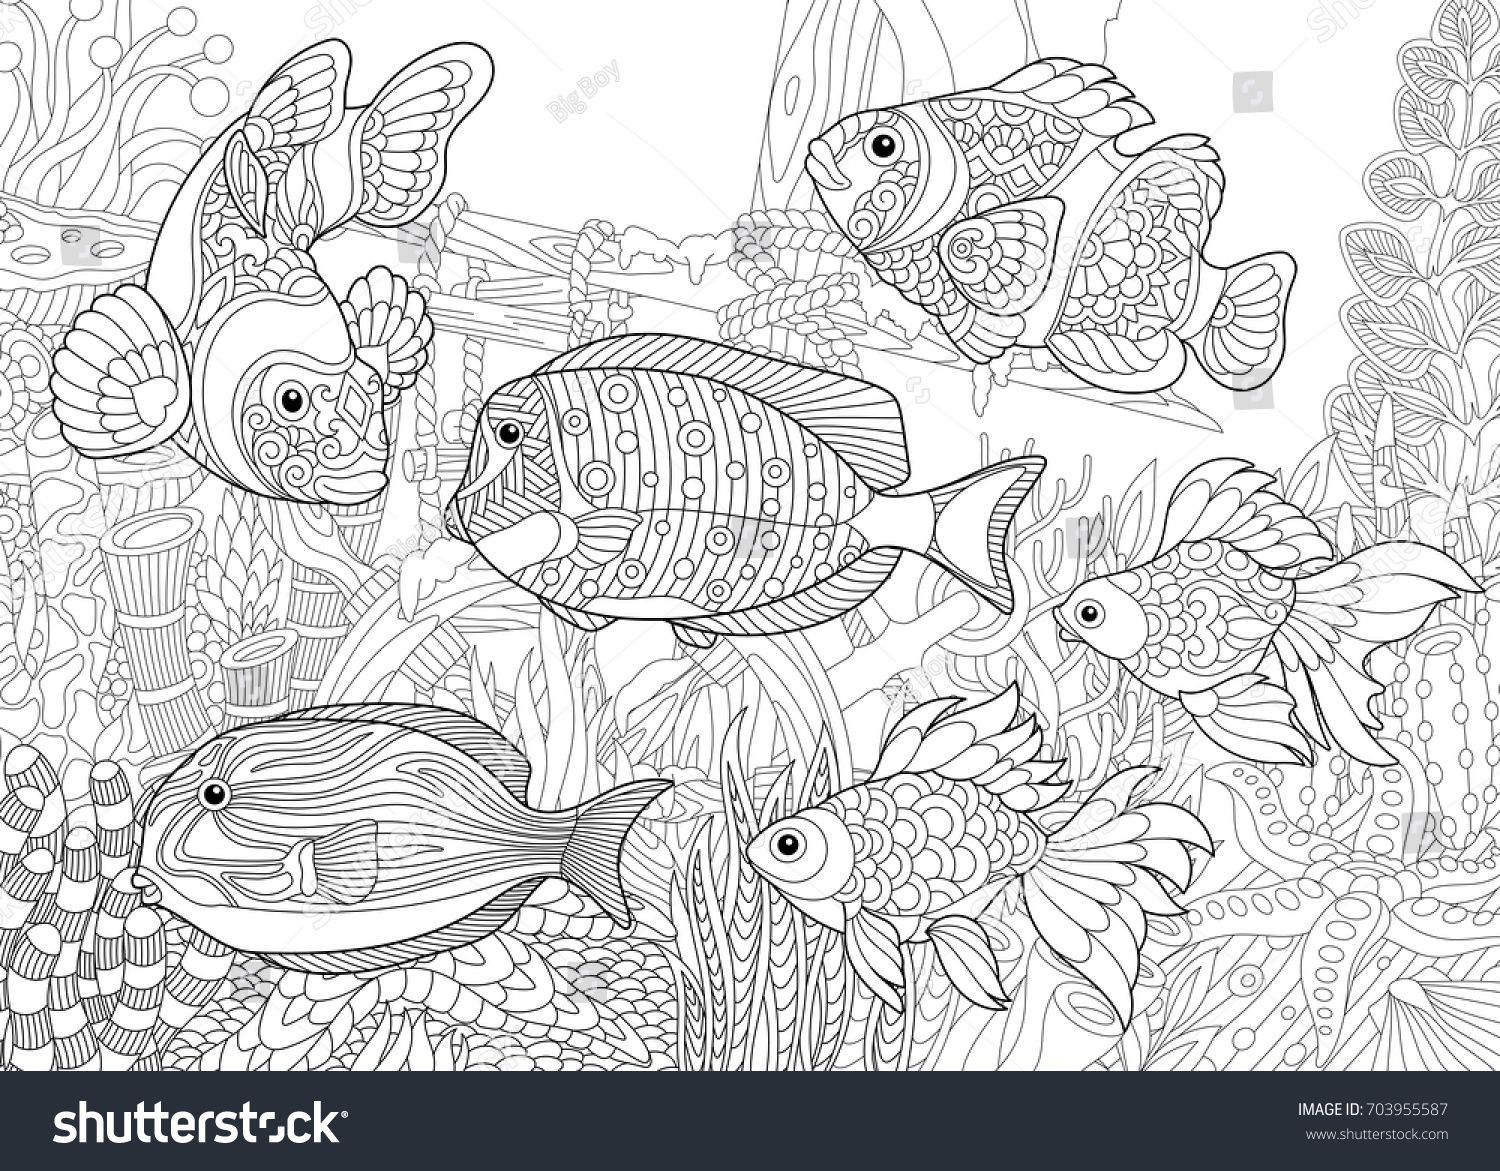 Mehndi Elephant Coloring Pages : Coloring page of underwater world different fish species on the